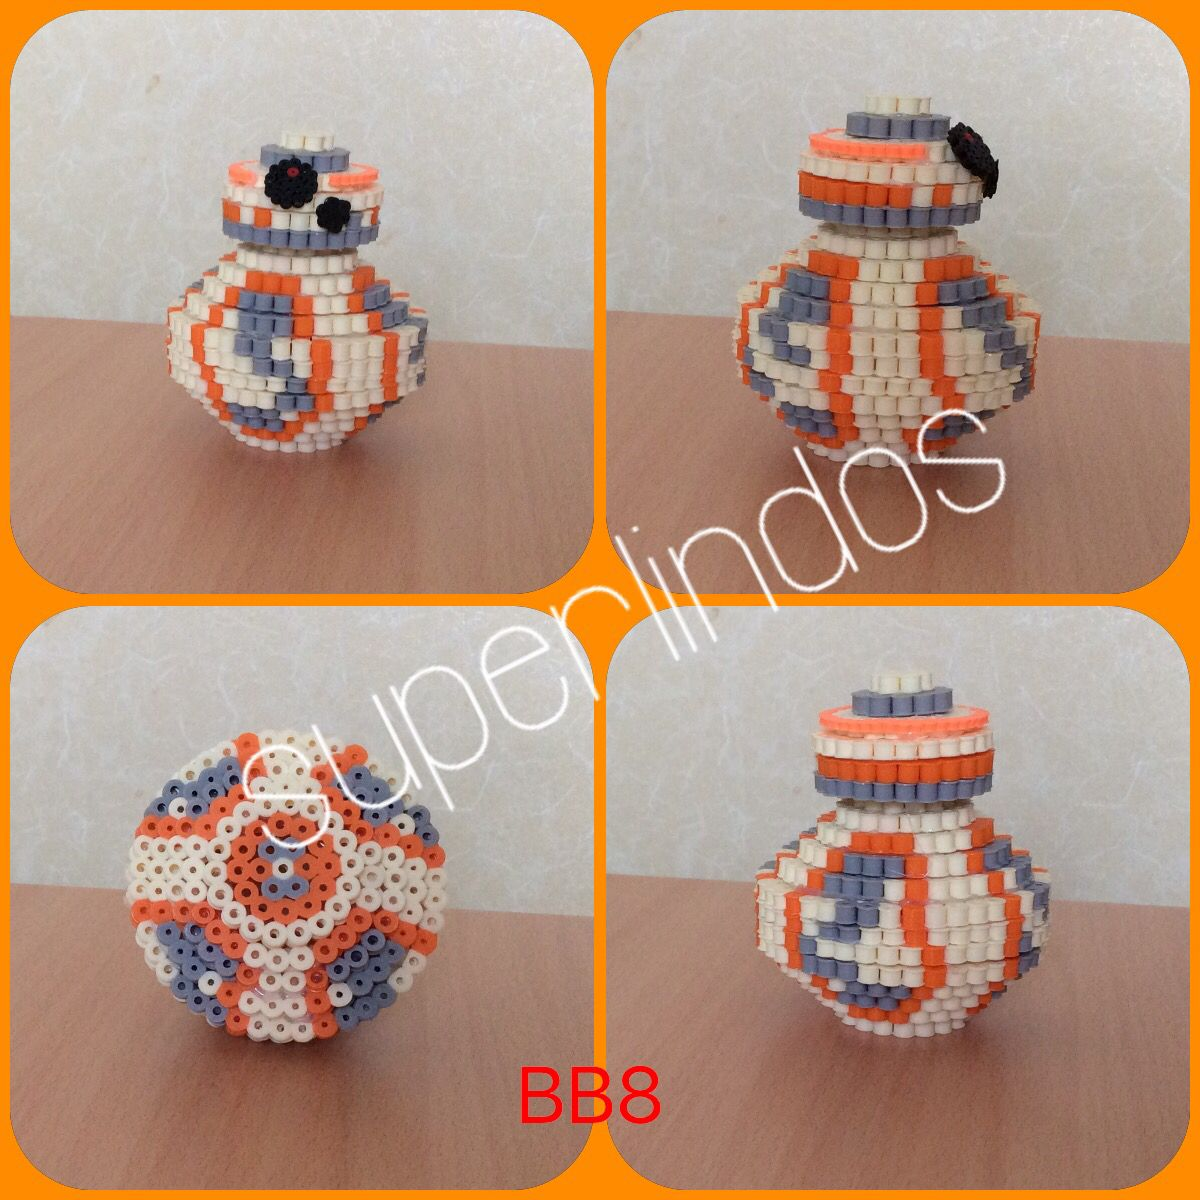 Aquabeads 30149 Star Wars Bb 8 Und Chewbacca Bastelset 21 2 X 18